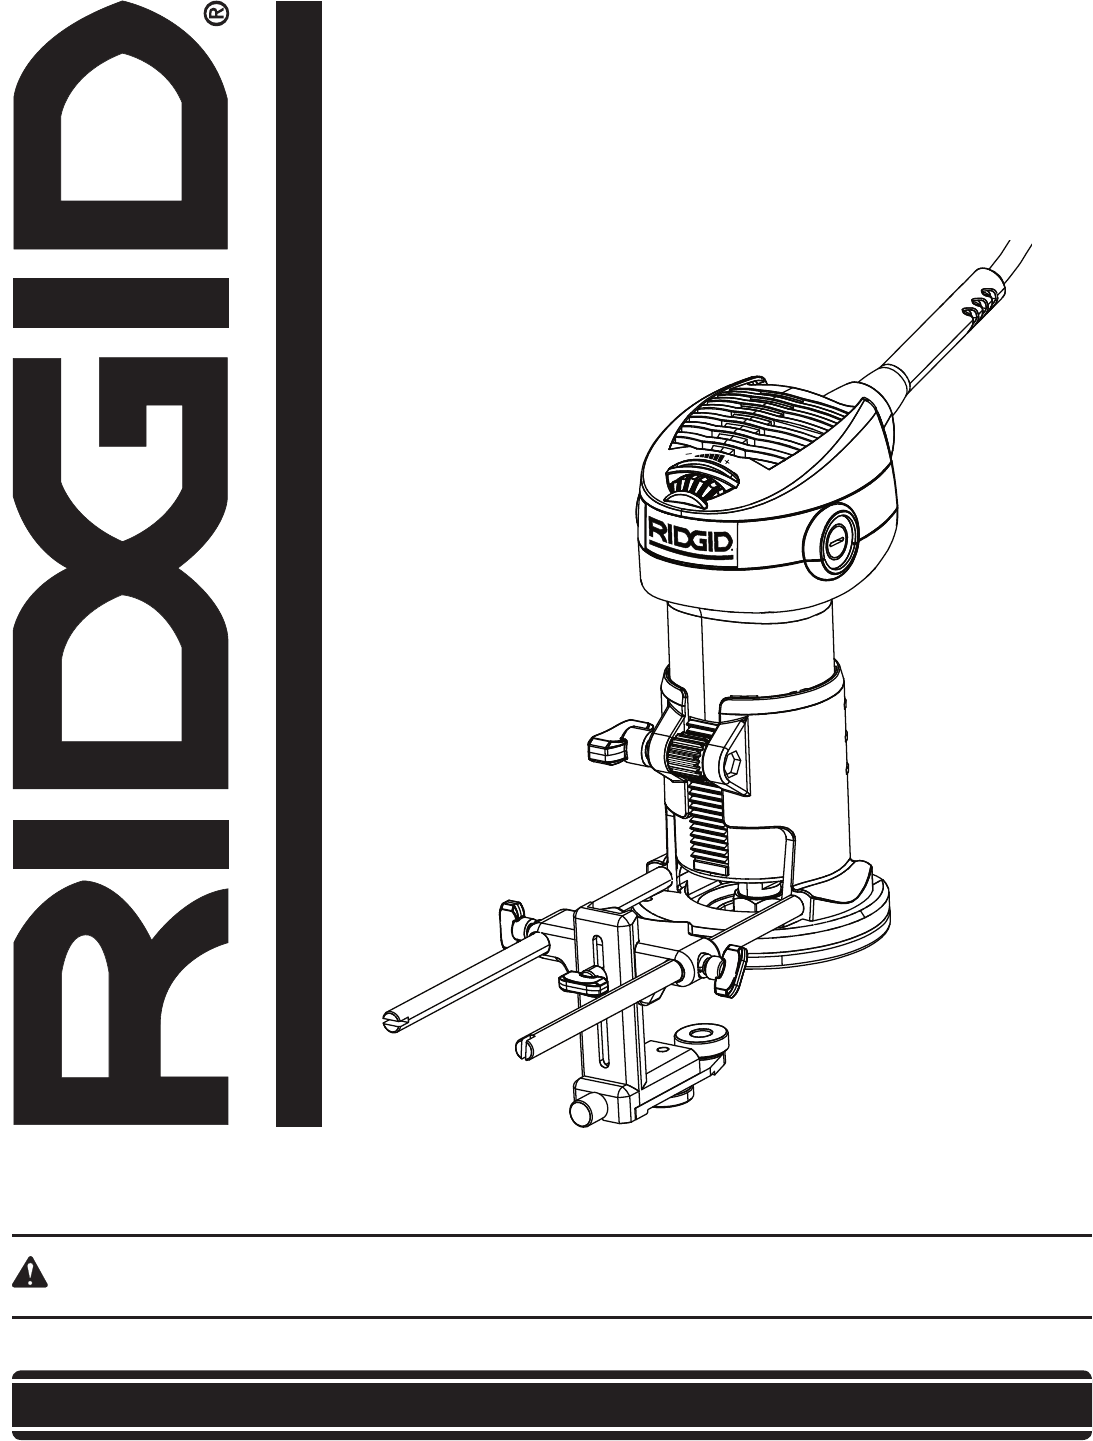 Ridgid Trimmer R User Guide